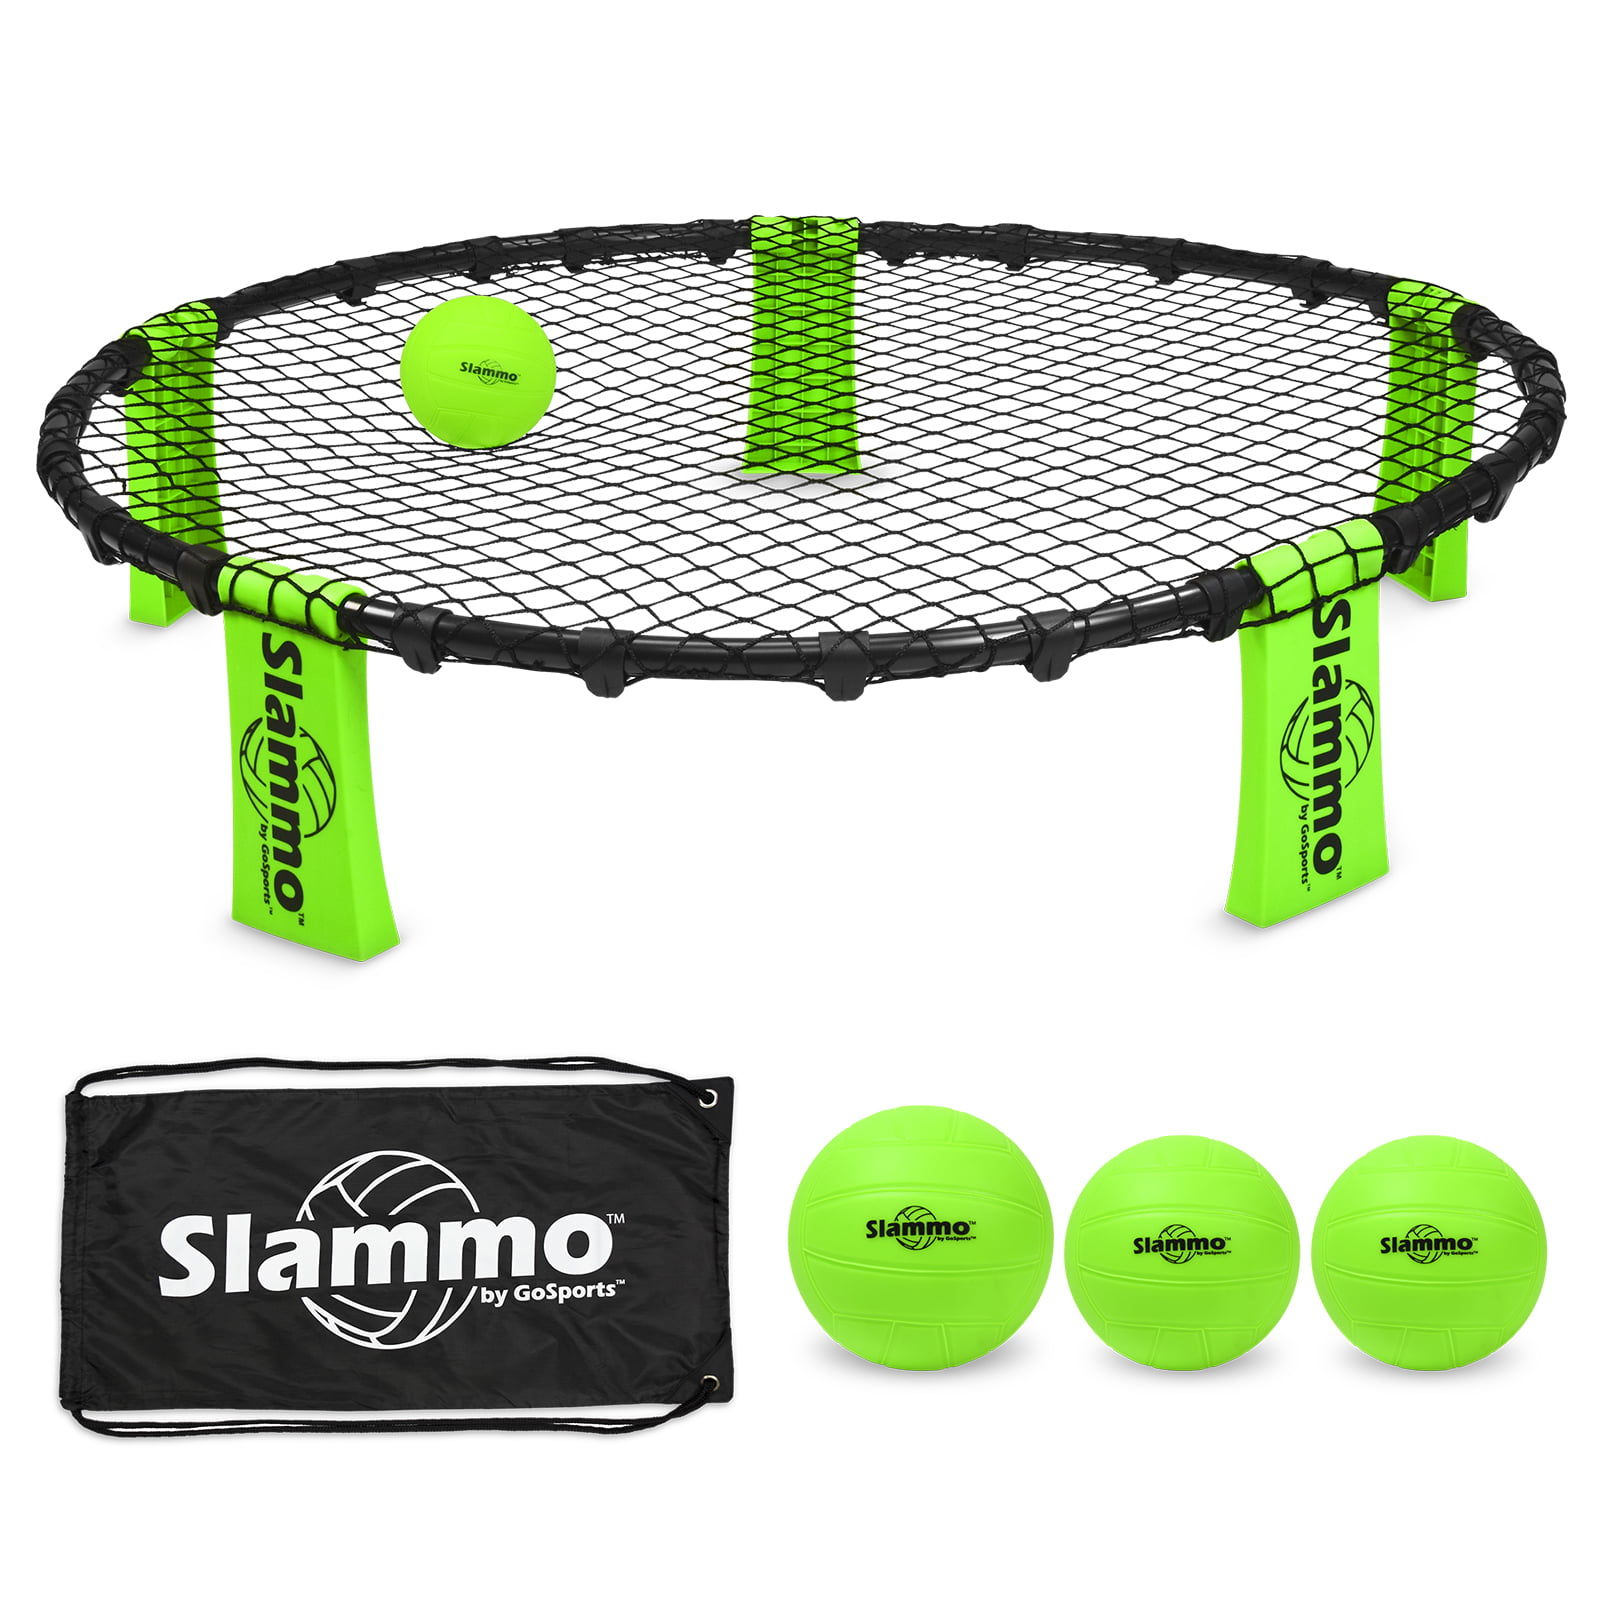 GoSports Slammo Game Set, Includes 3 Balls, Carrying Case and Slammo Rules by P&P Imports LLC